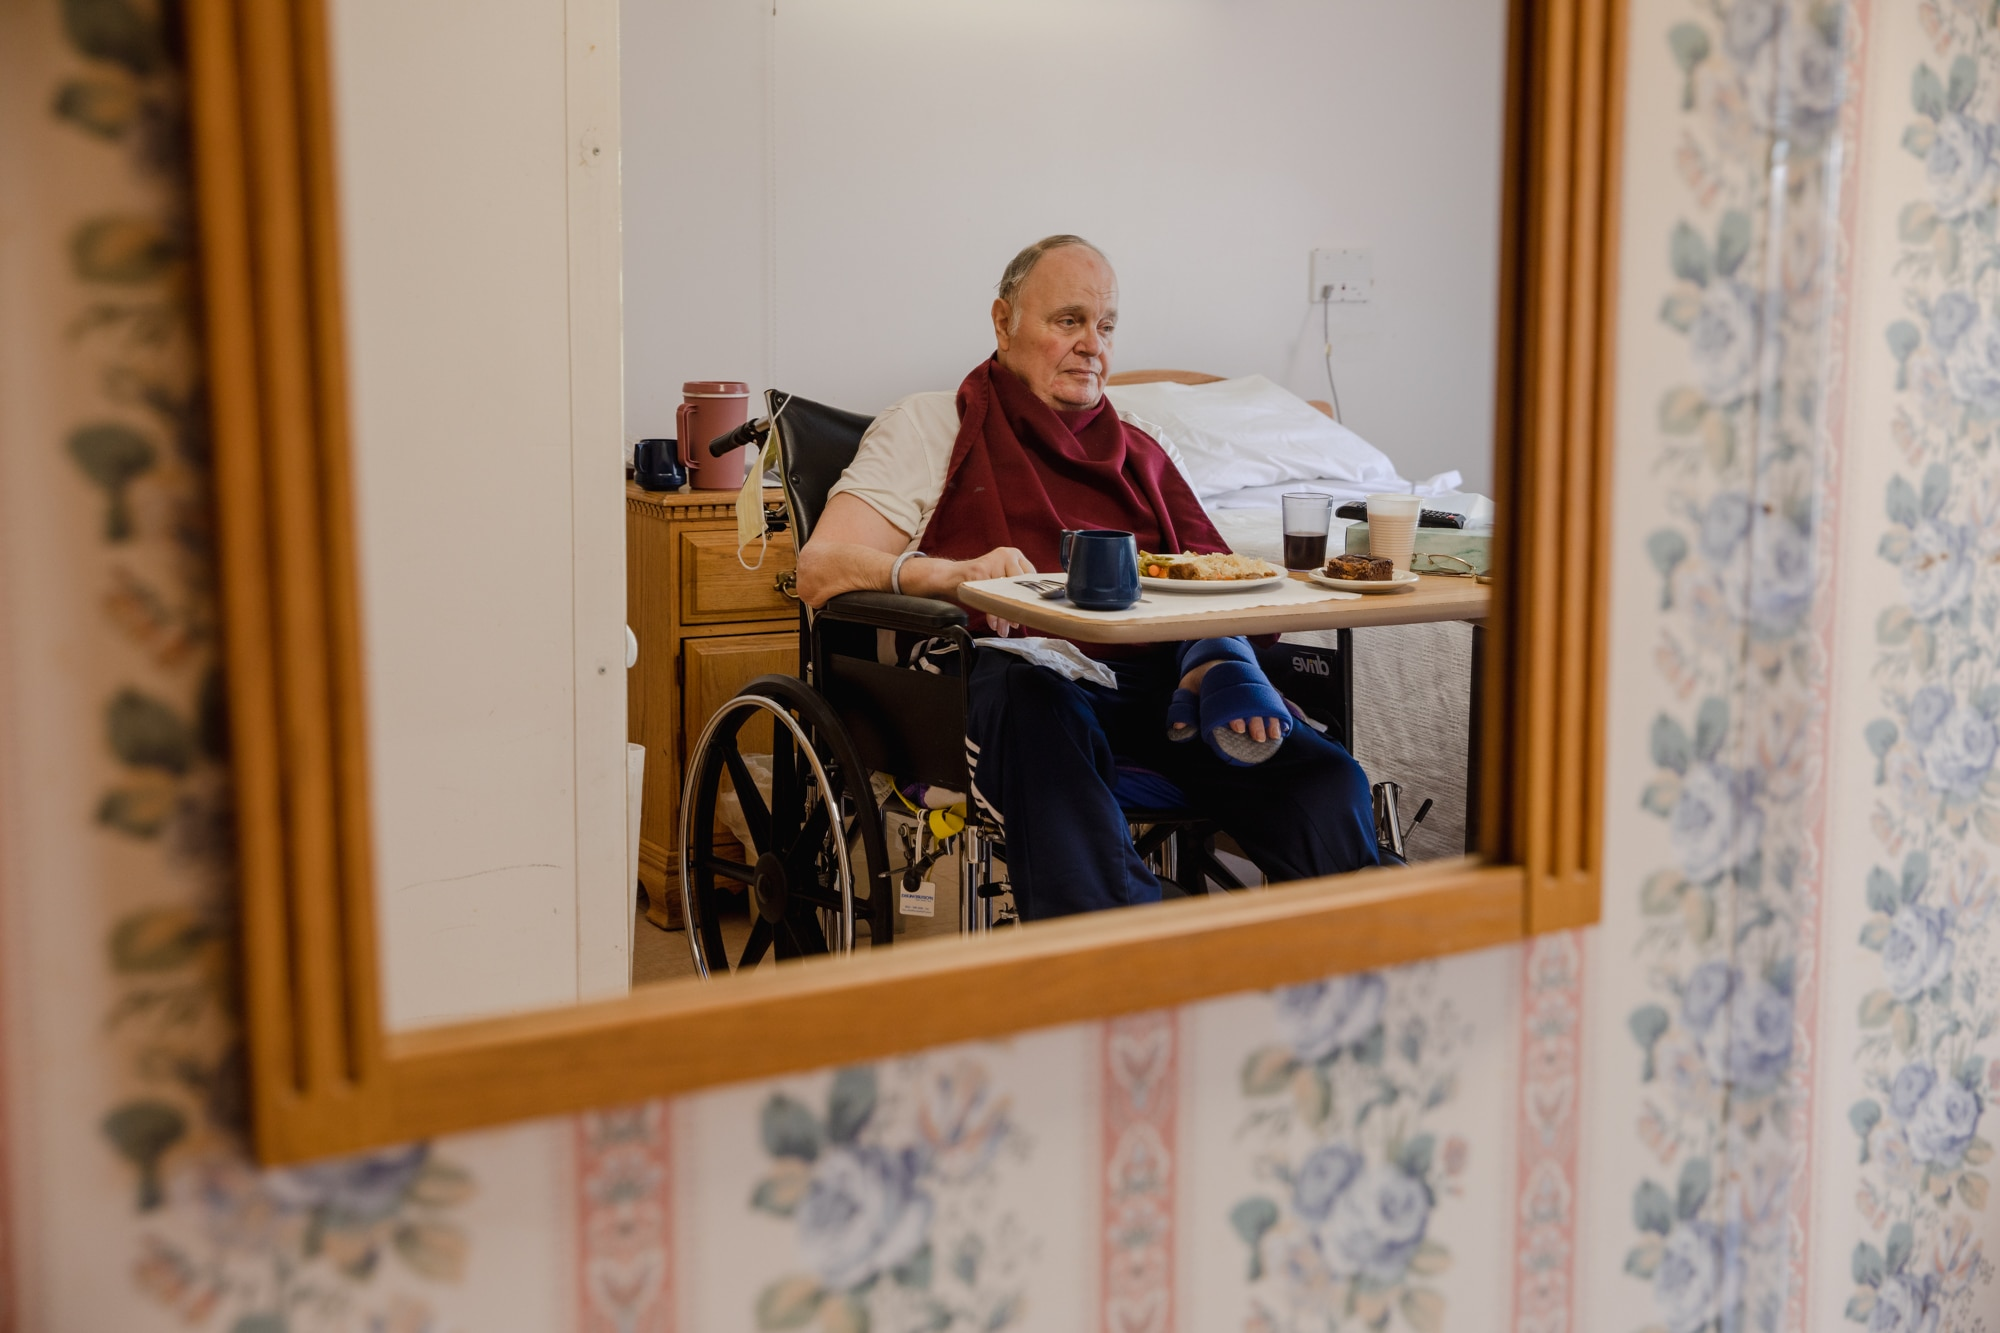 Proposal requiring higher staffing levels in nursing homes clears Senate